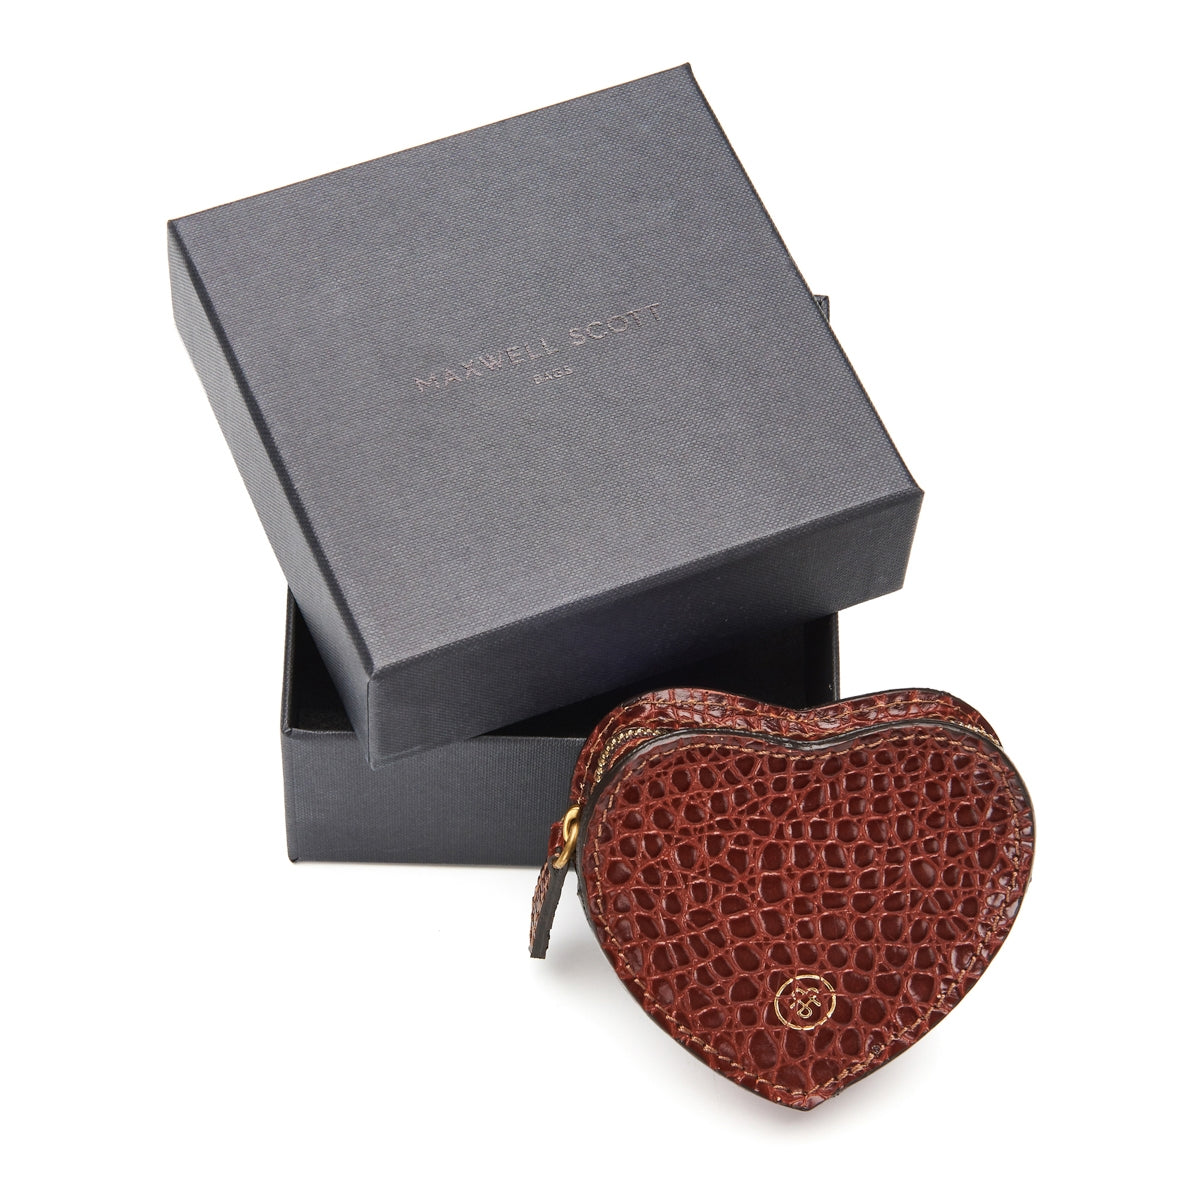 Image 6 of the 'Mirabella' Heart Shaped Croco Leather Coin Purse